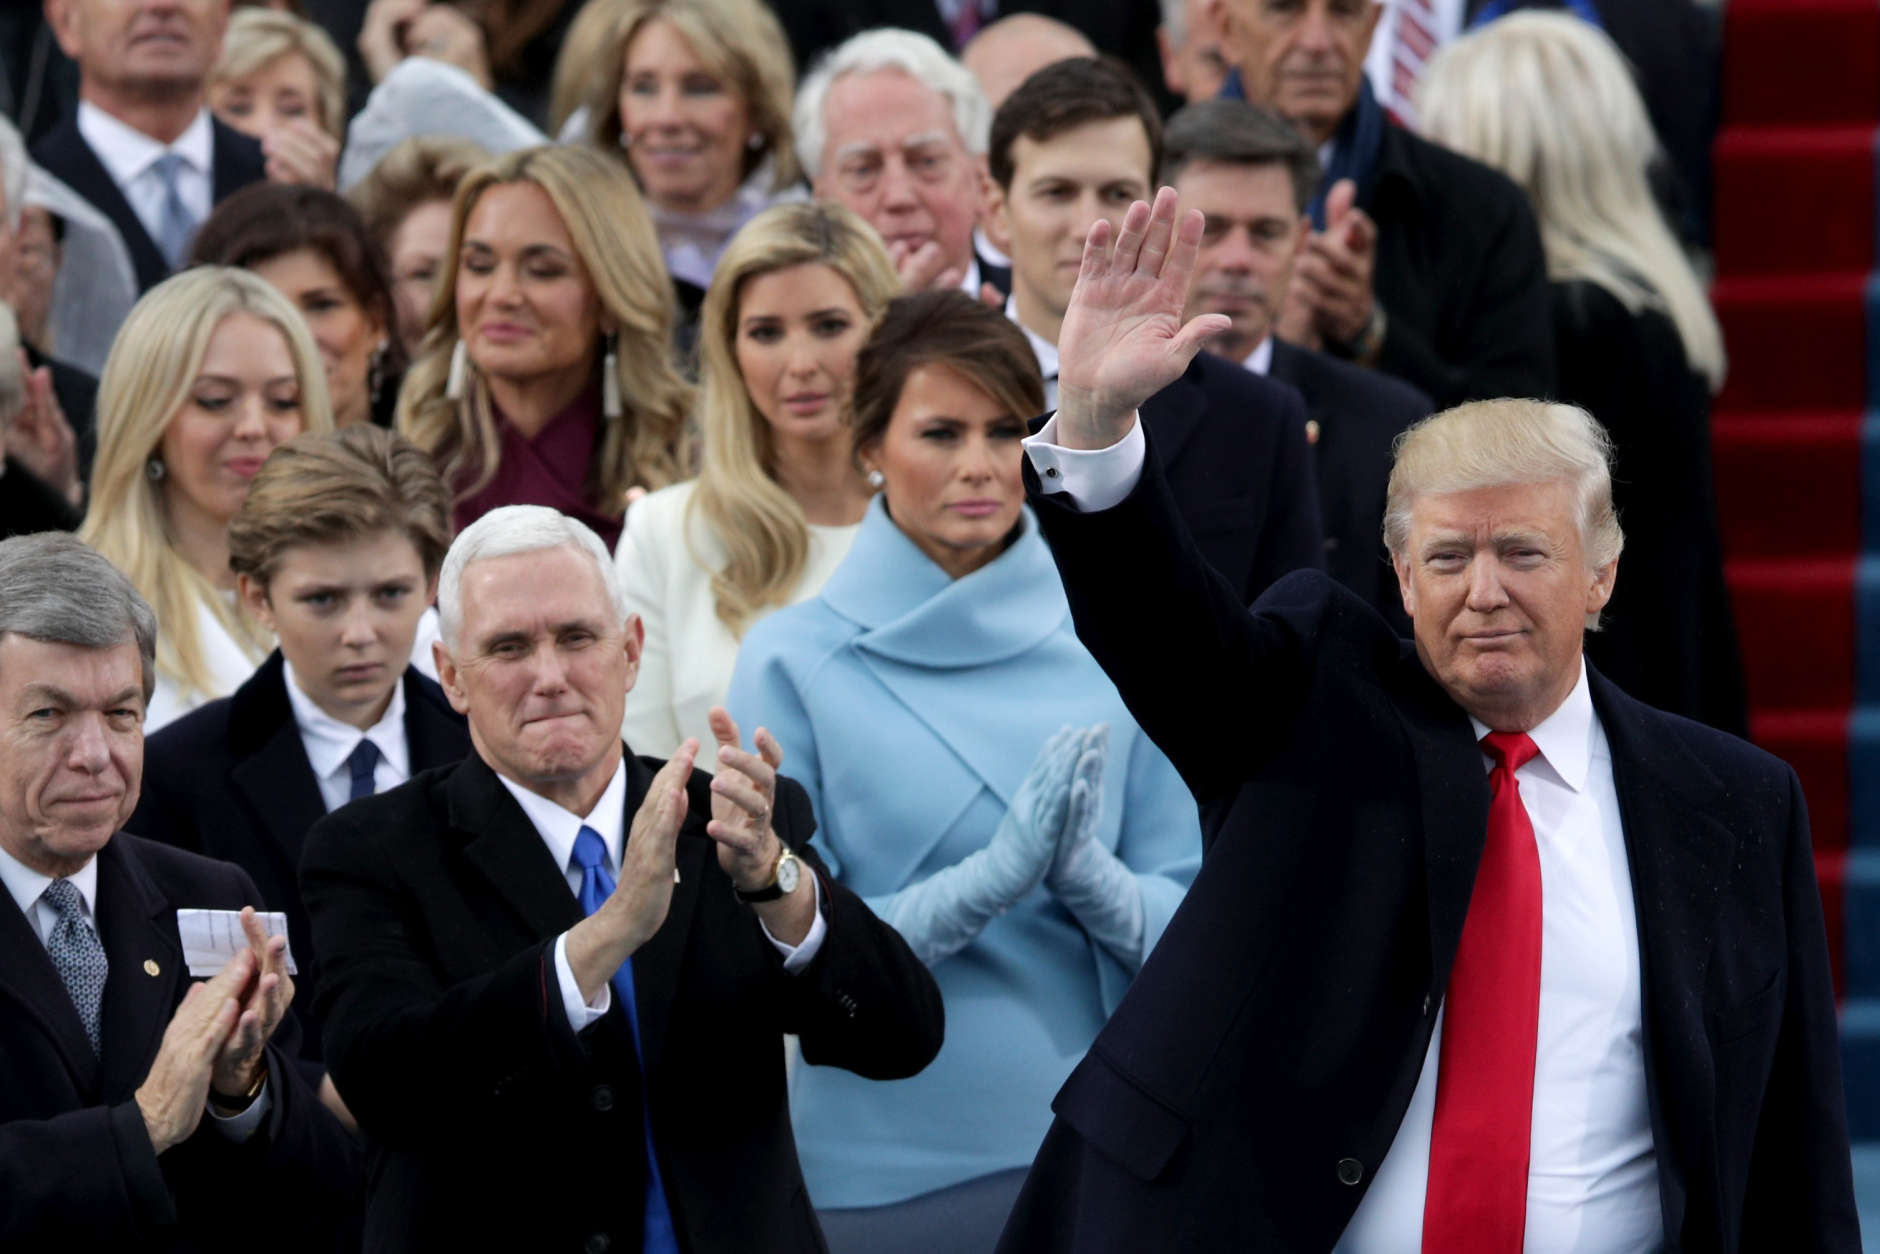 WASHINGTON, DC - JANUARY 20:  President Donald Trump waves as Vice President Mike Pence and First Lady Melania Trump applaud on the West Front of the U.S. Capitol on January 20, 2017 in Washington, DC. In today's inauguration ceremony Donald J. Trump becomes the 45th president of the United States.  (Photo by Alex Wong/Getty Images)